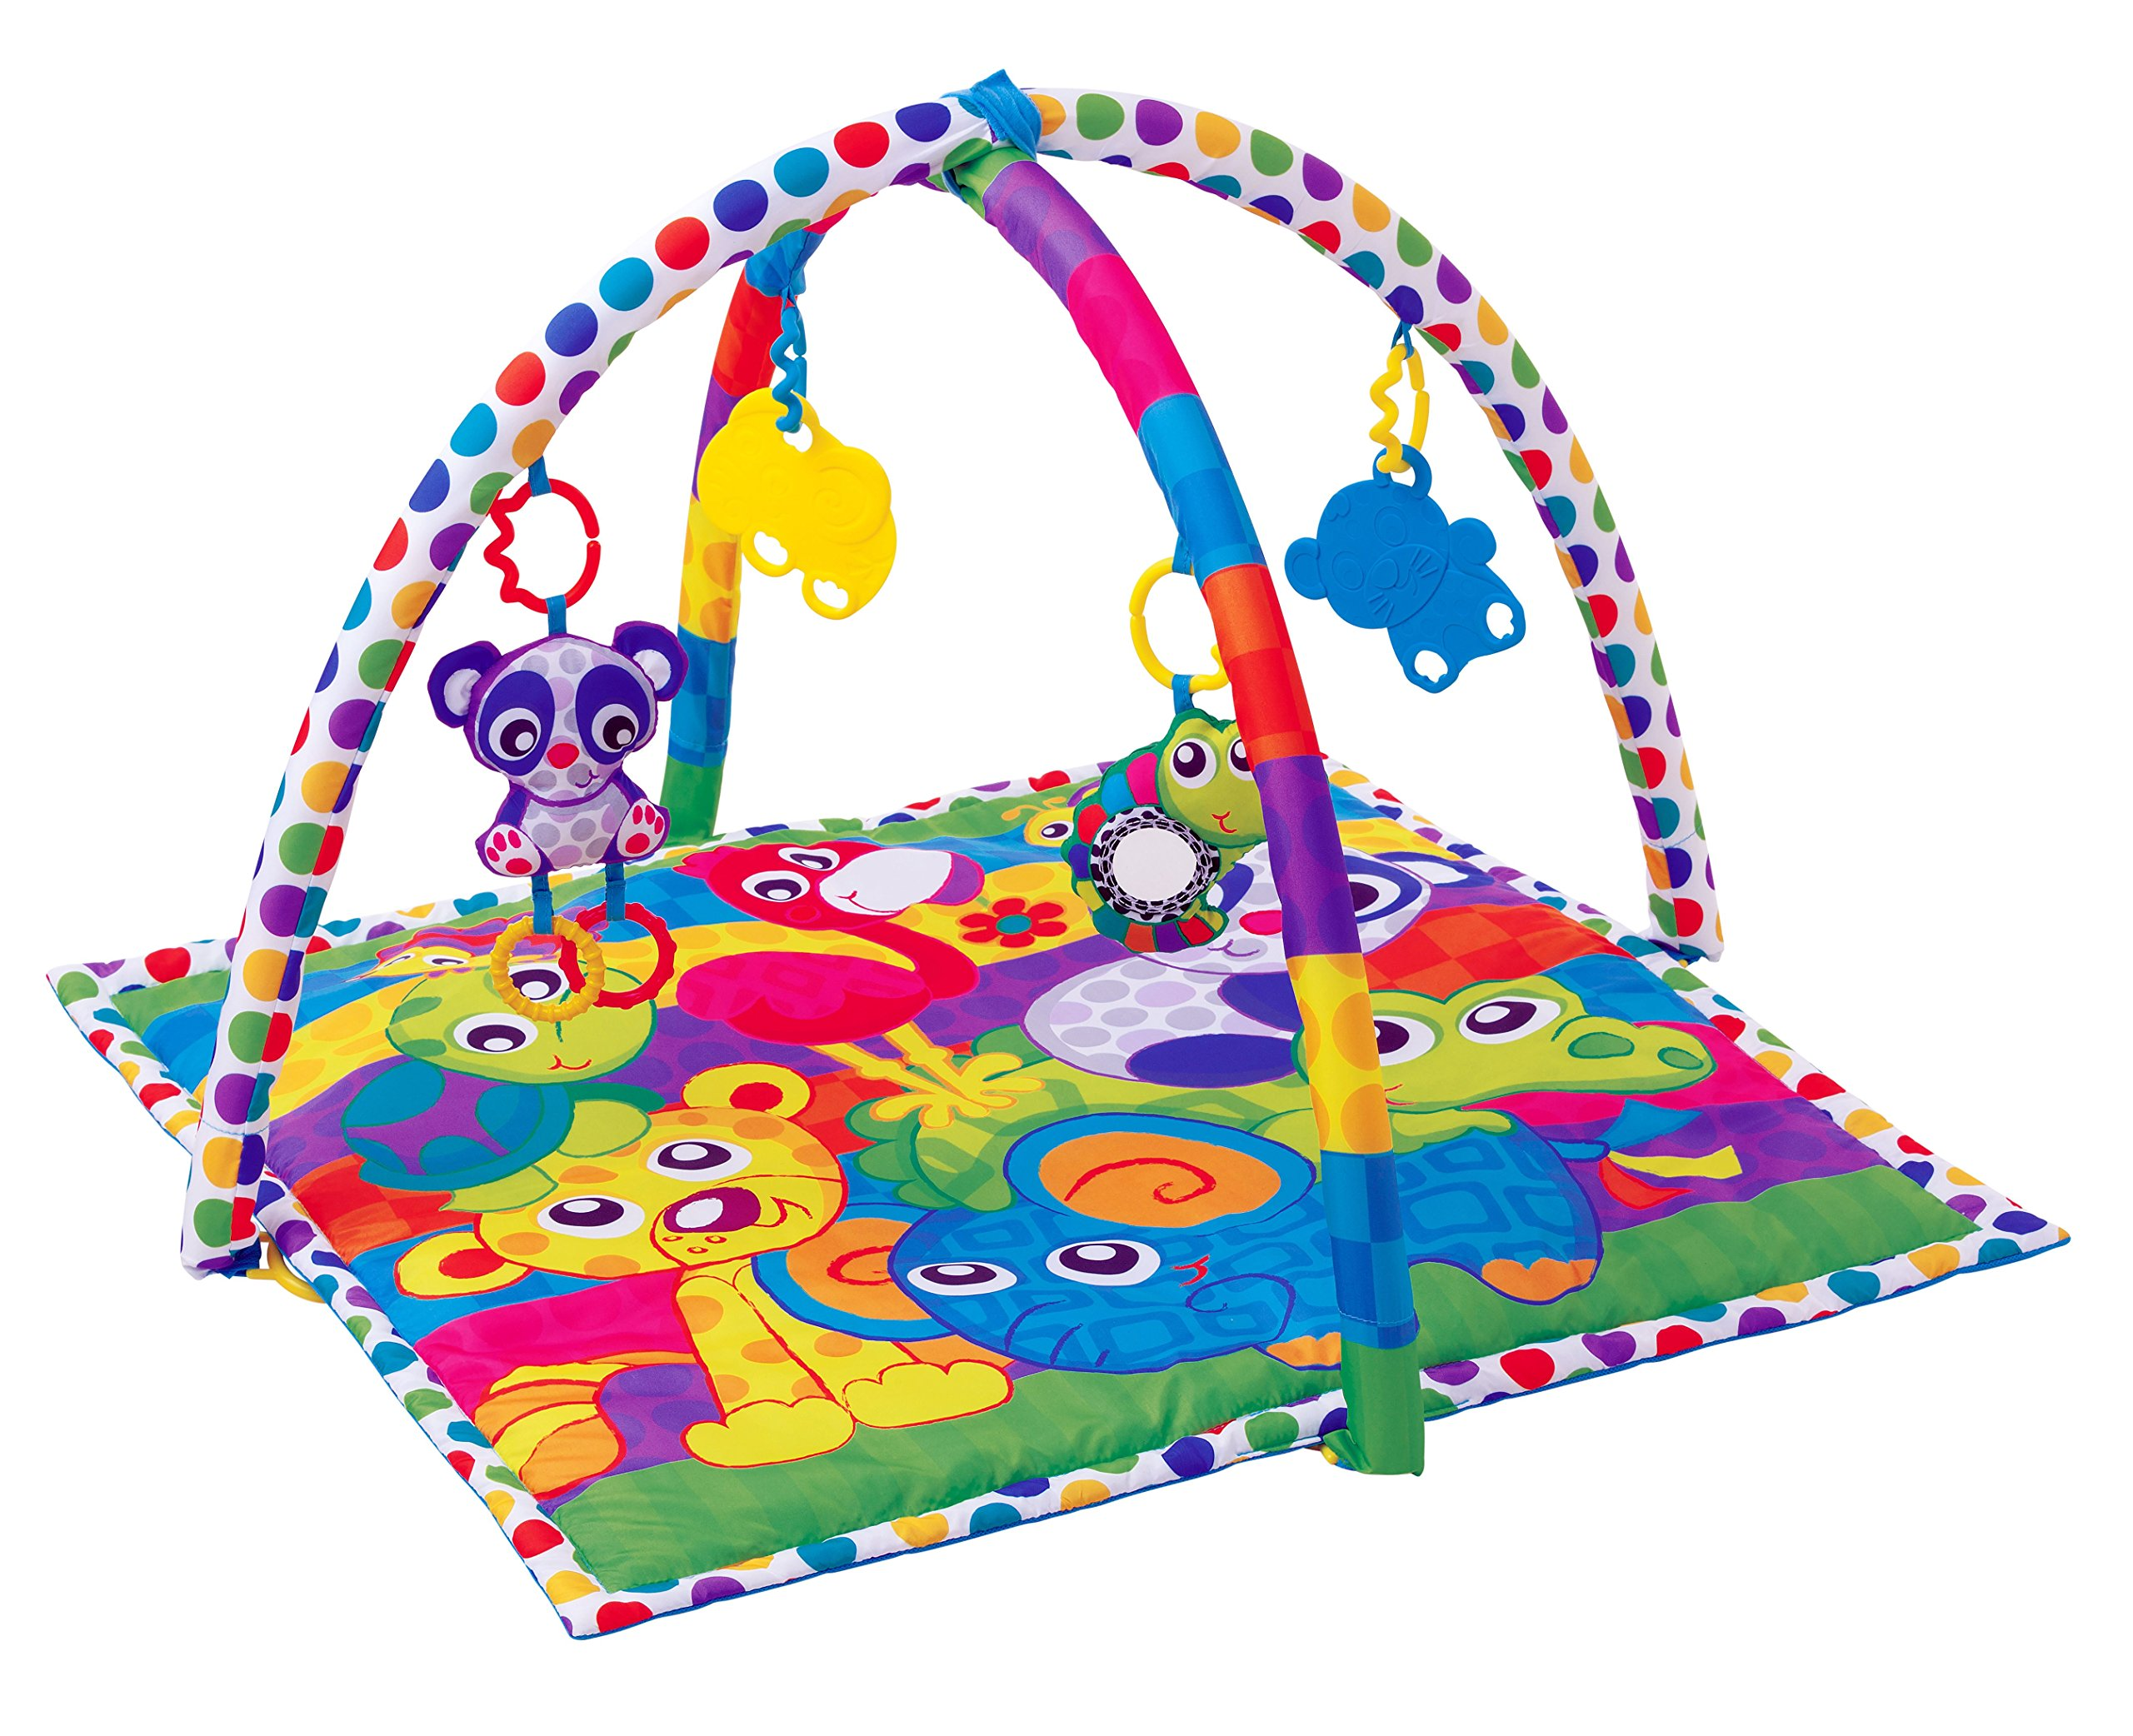 Playgro Linking Animal Friends Playgym for baby infant toddler children 0185477, Playgro is Encouraging Imagination with STEM/STEM for a bright future - Great start for a world of learning